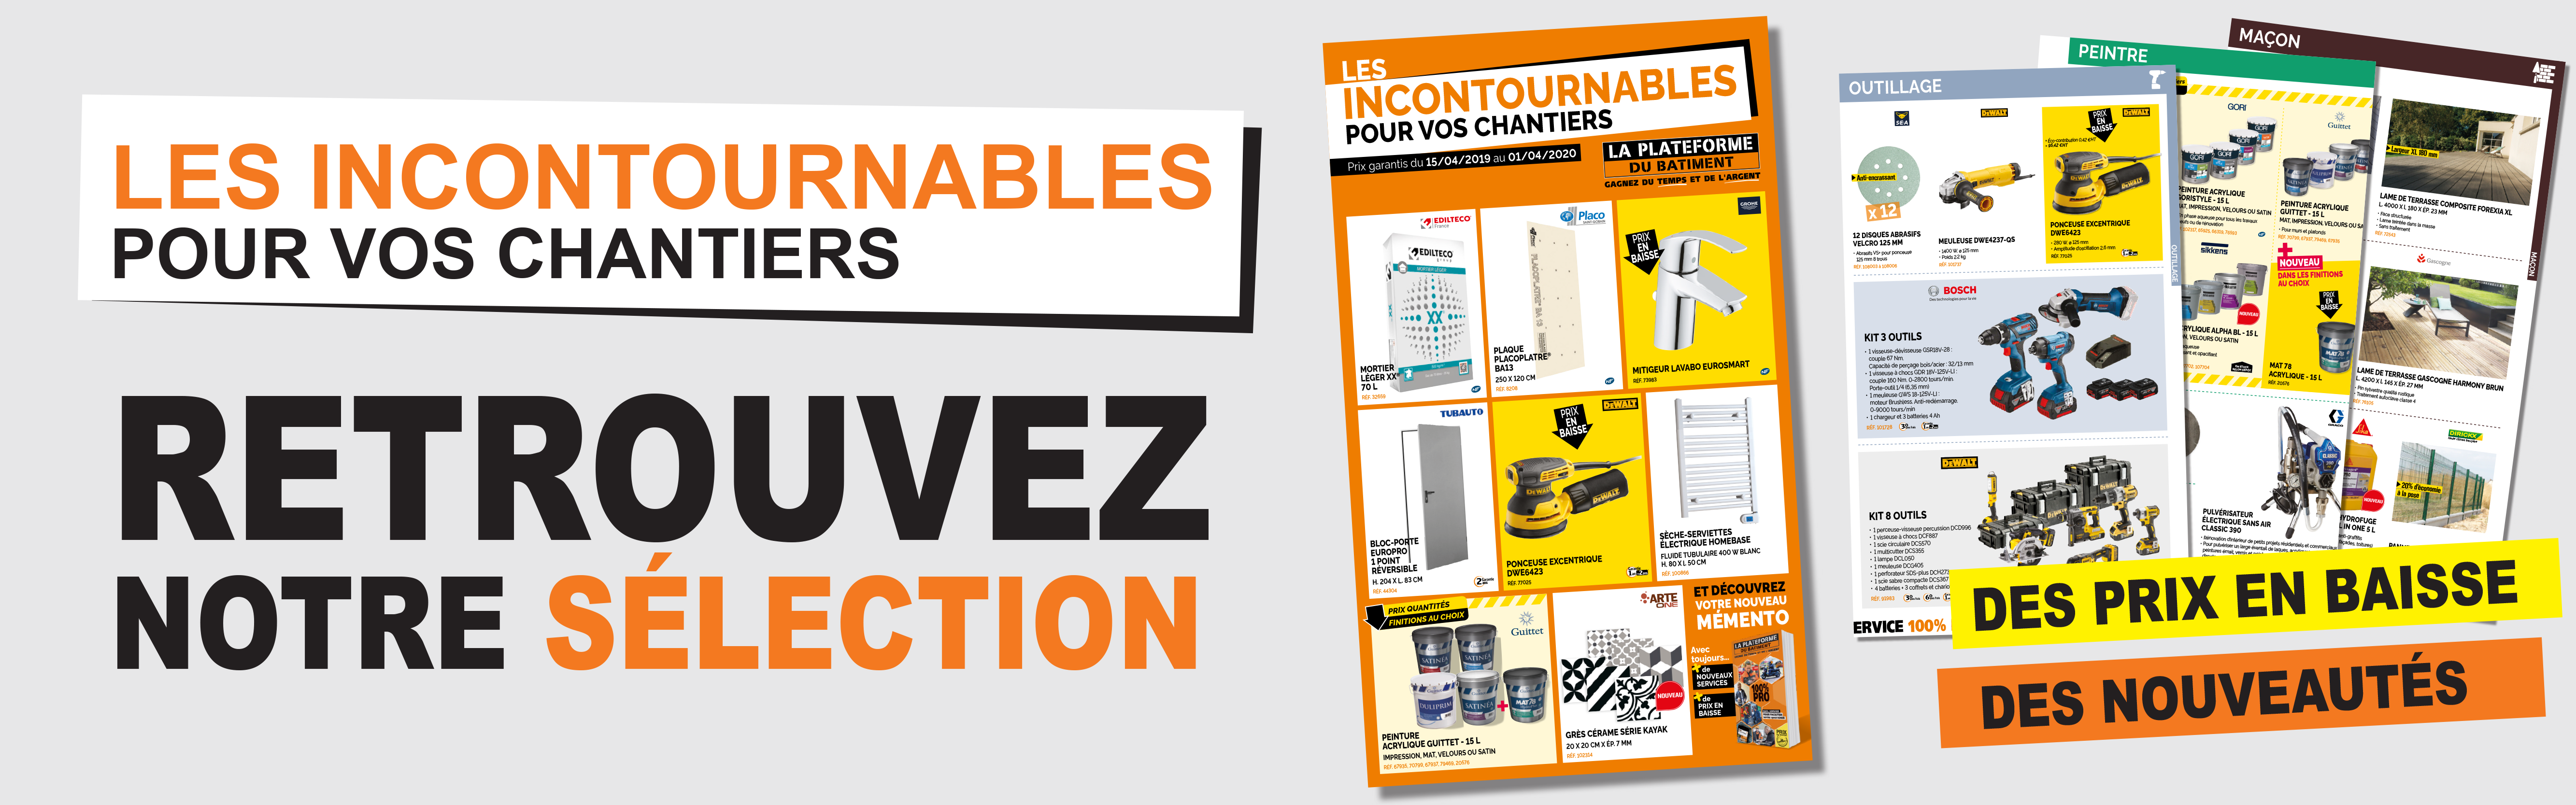 Incontournables chantiers